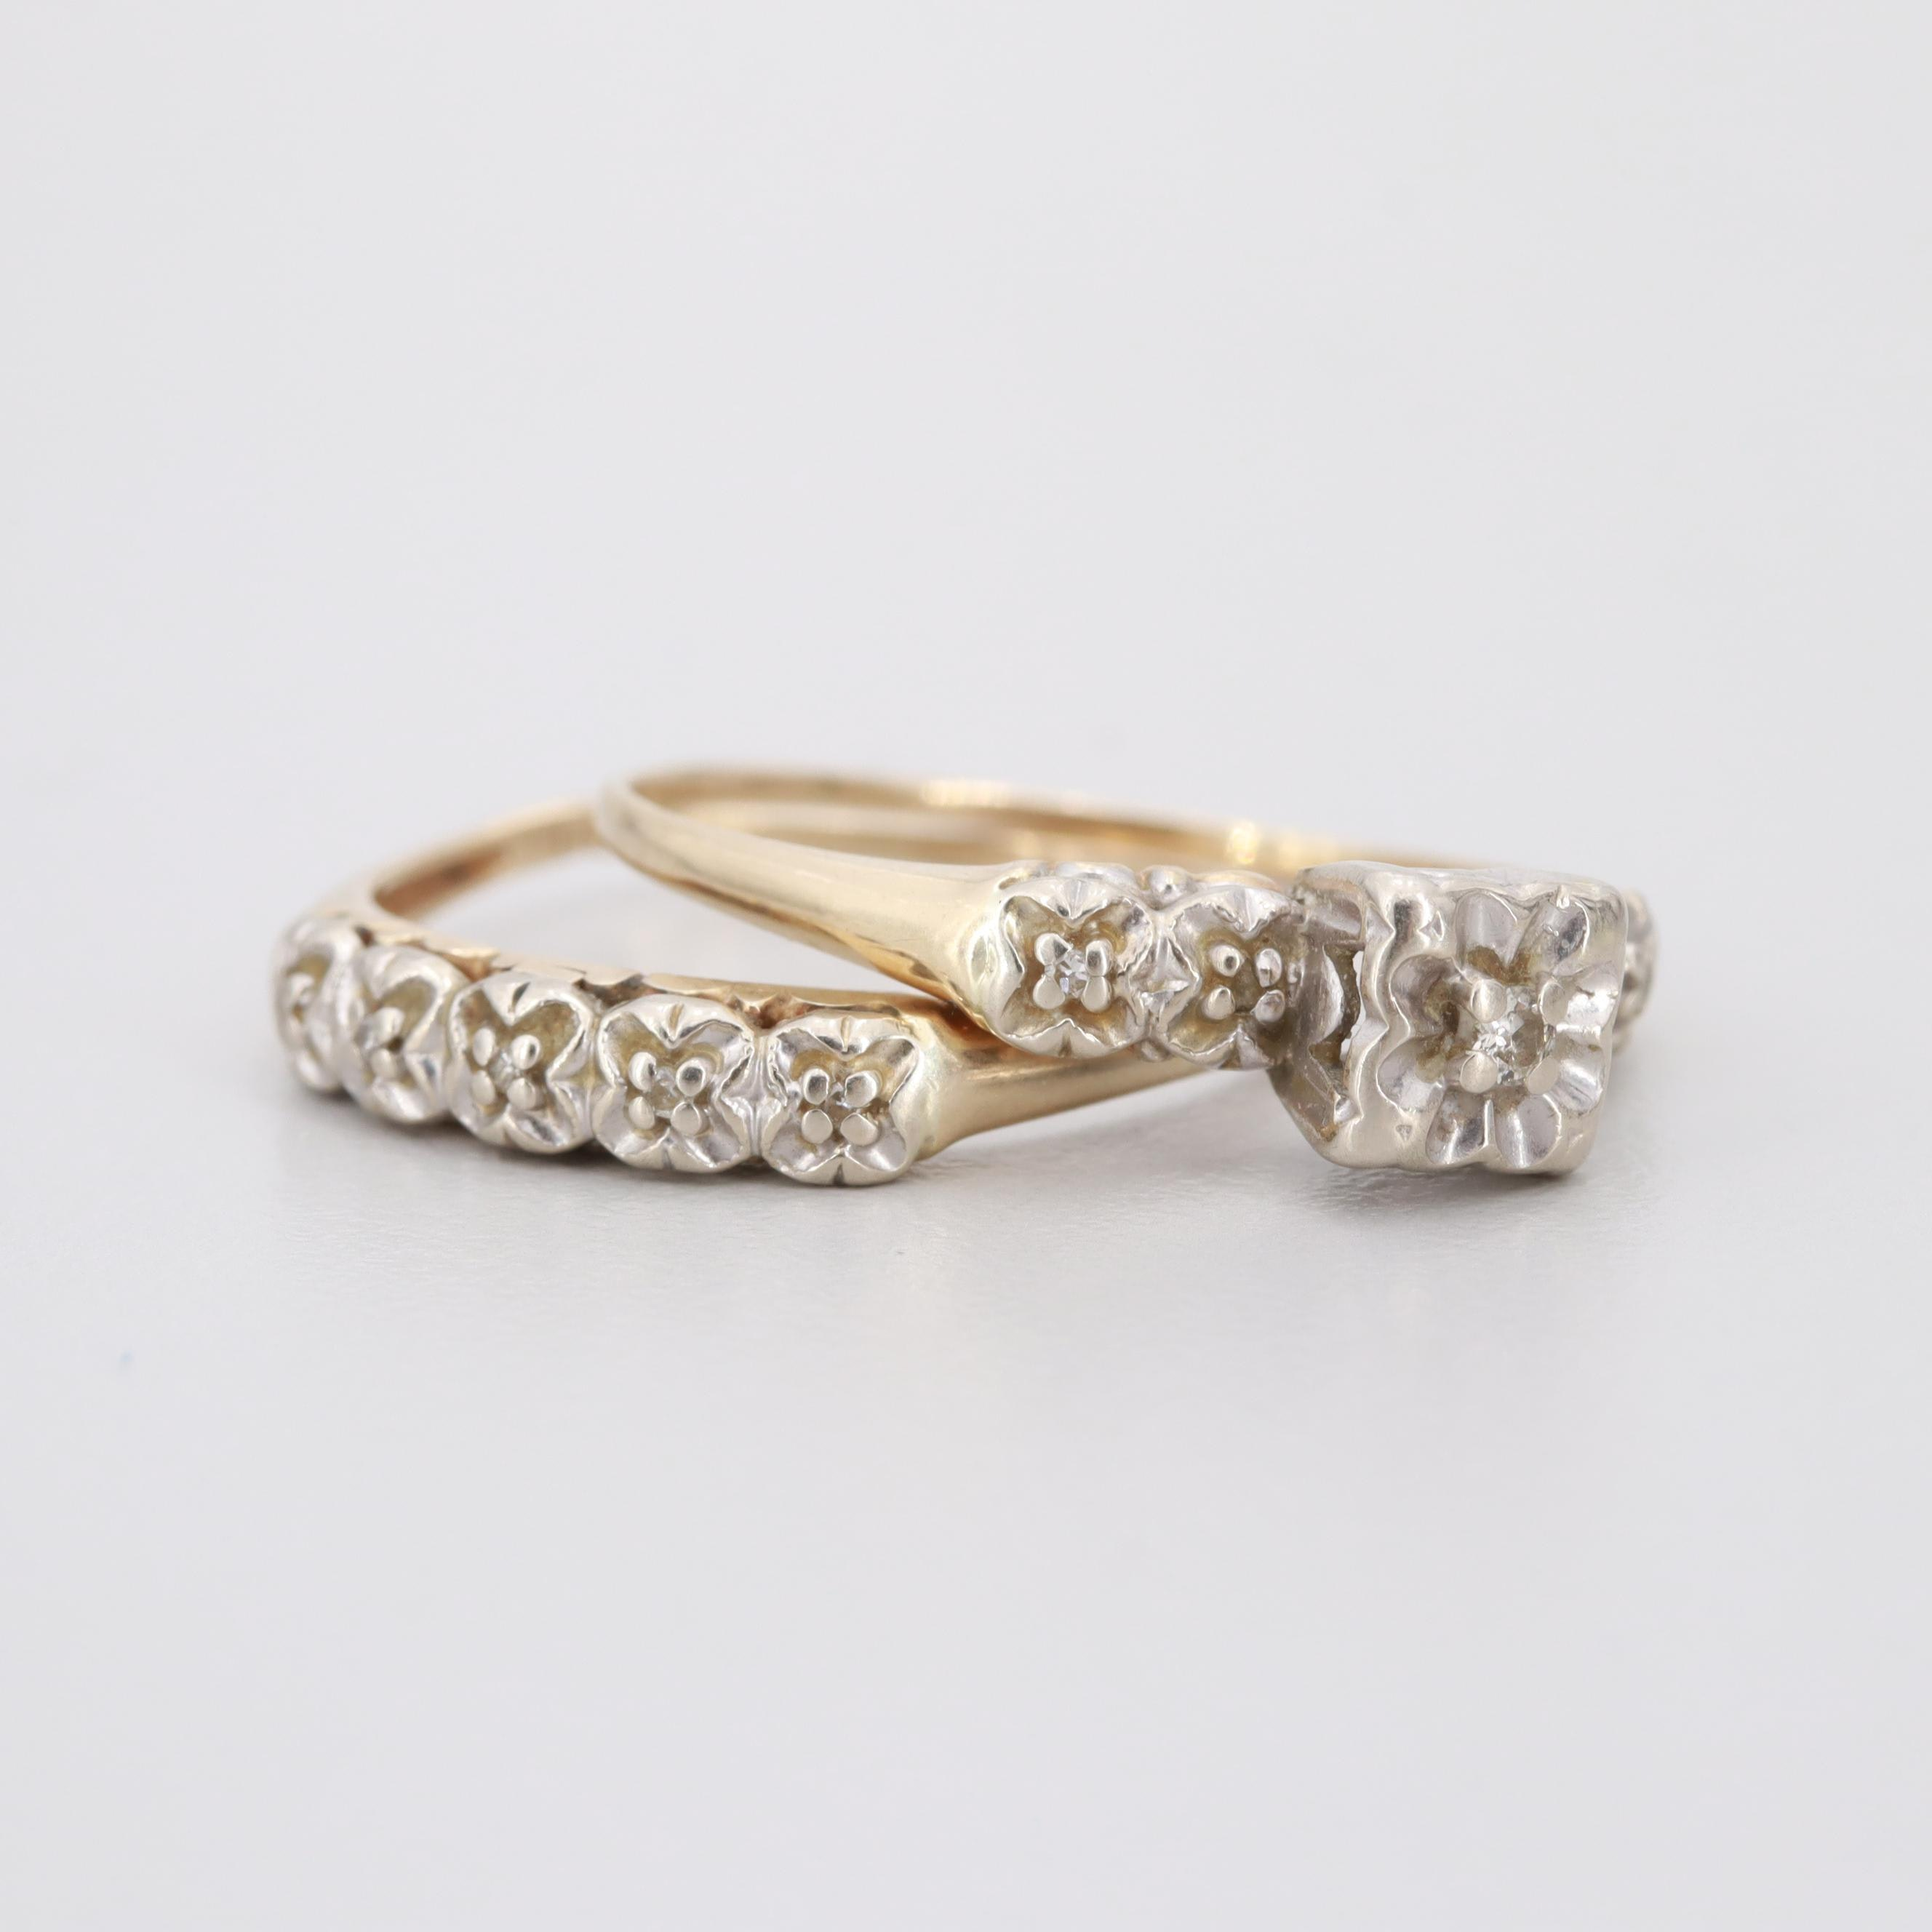 Vintage 14K Yellow and White Gold Diamond Wedding Ring Set